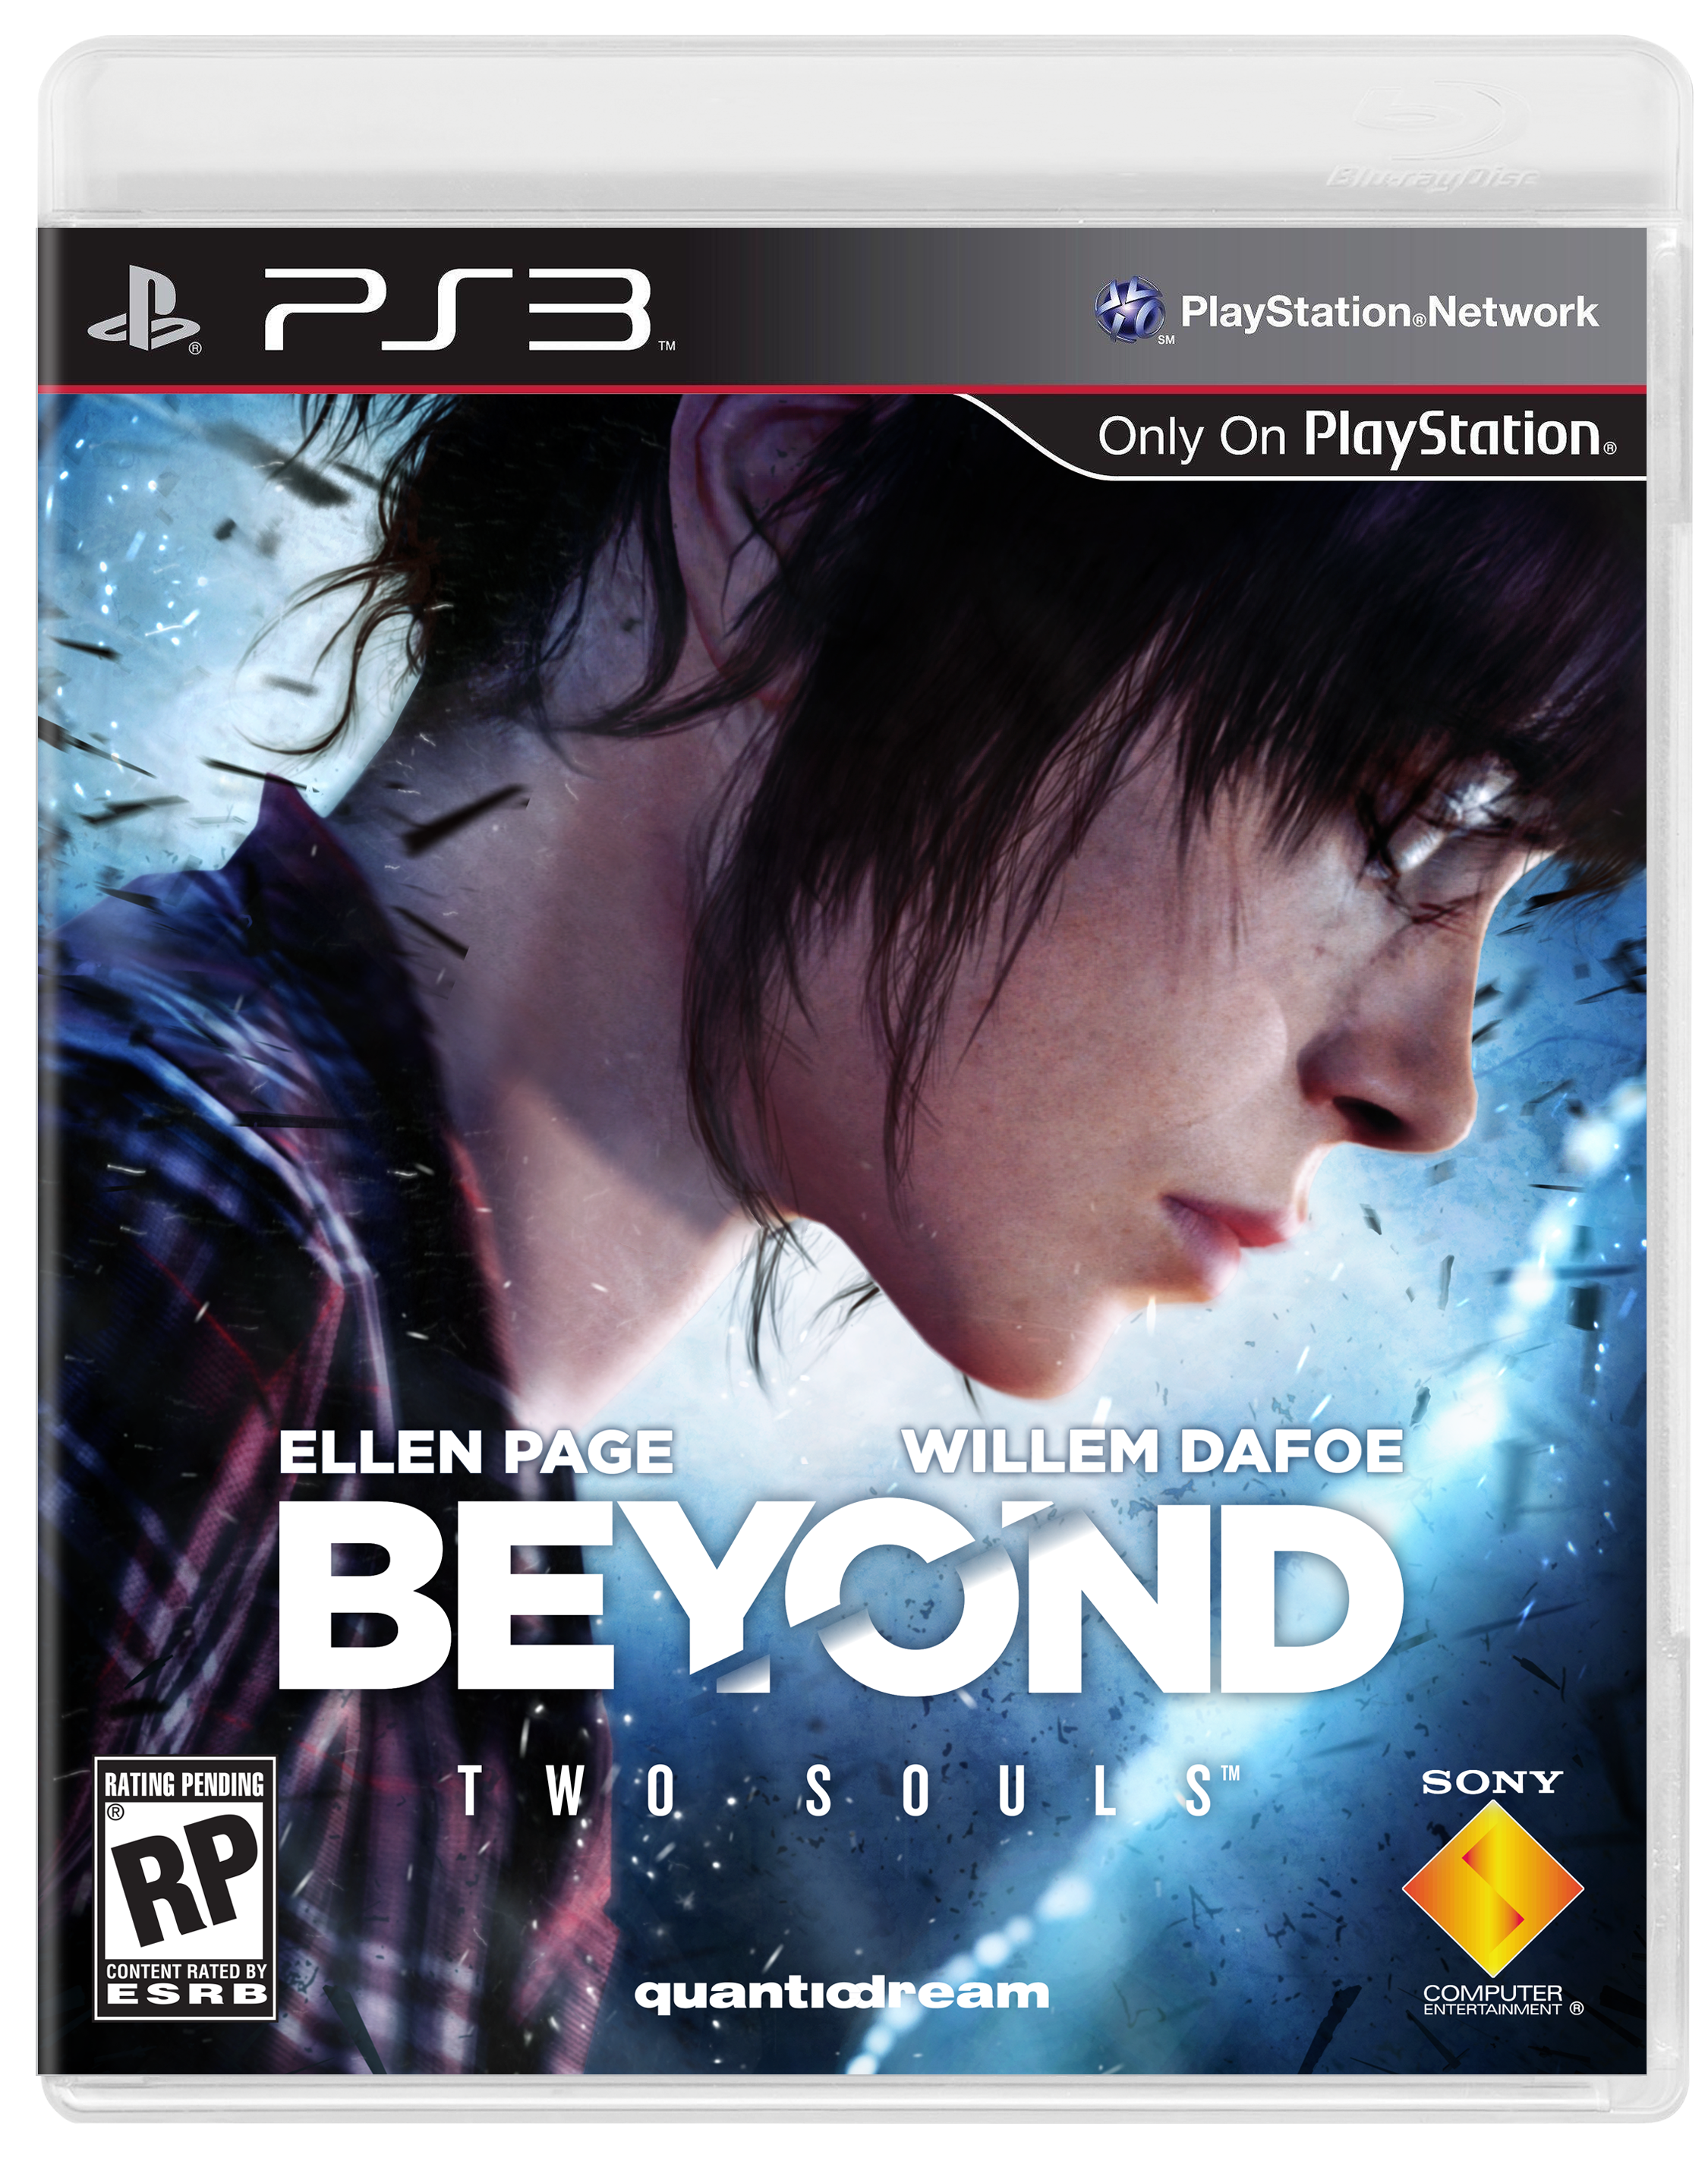 PS3_PackShot_StraightOn_QD